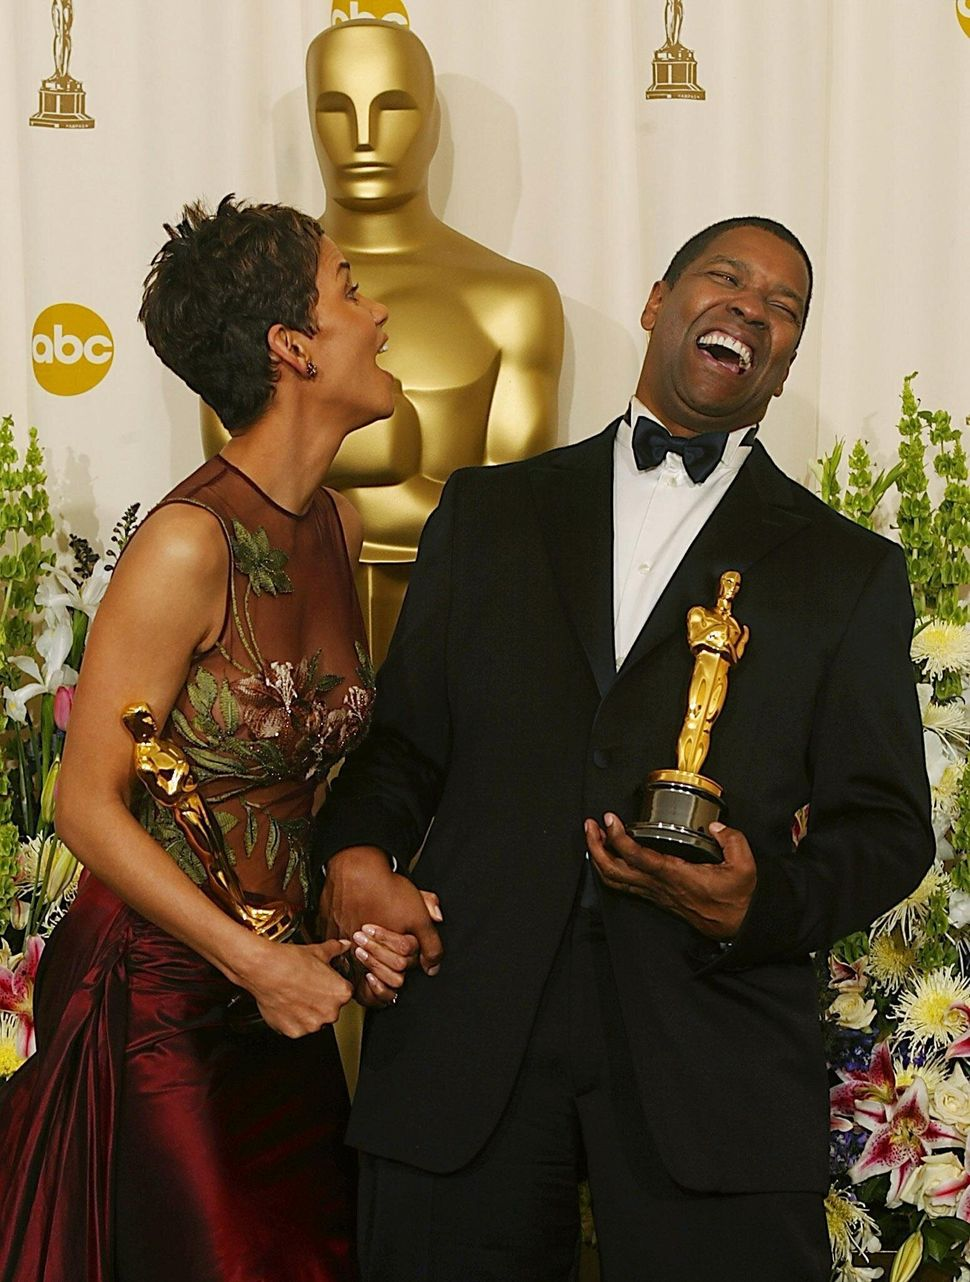 <em> Denzel Washington and Halle Berry share a laugh while holding their Oscar statues after winning the awards for Best Acto